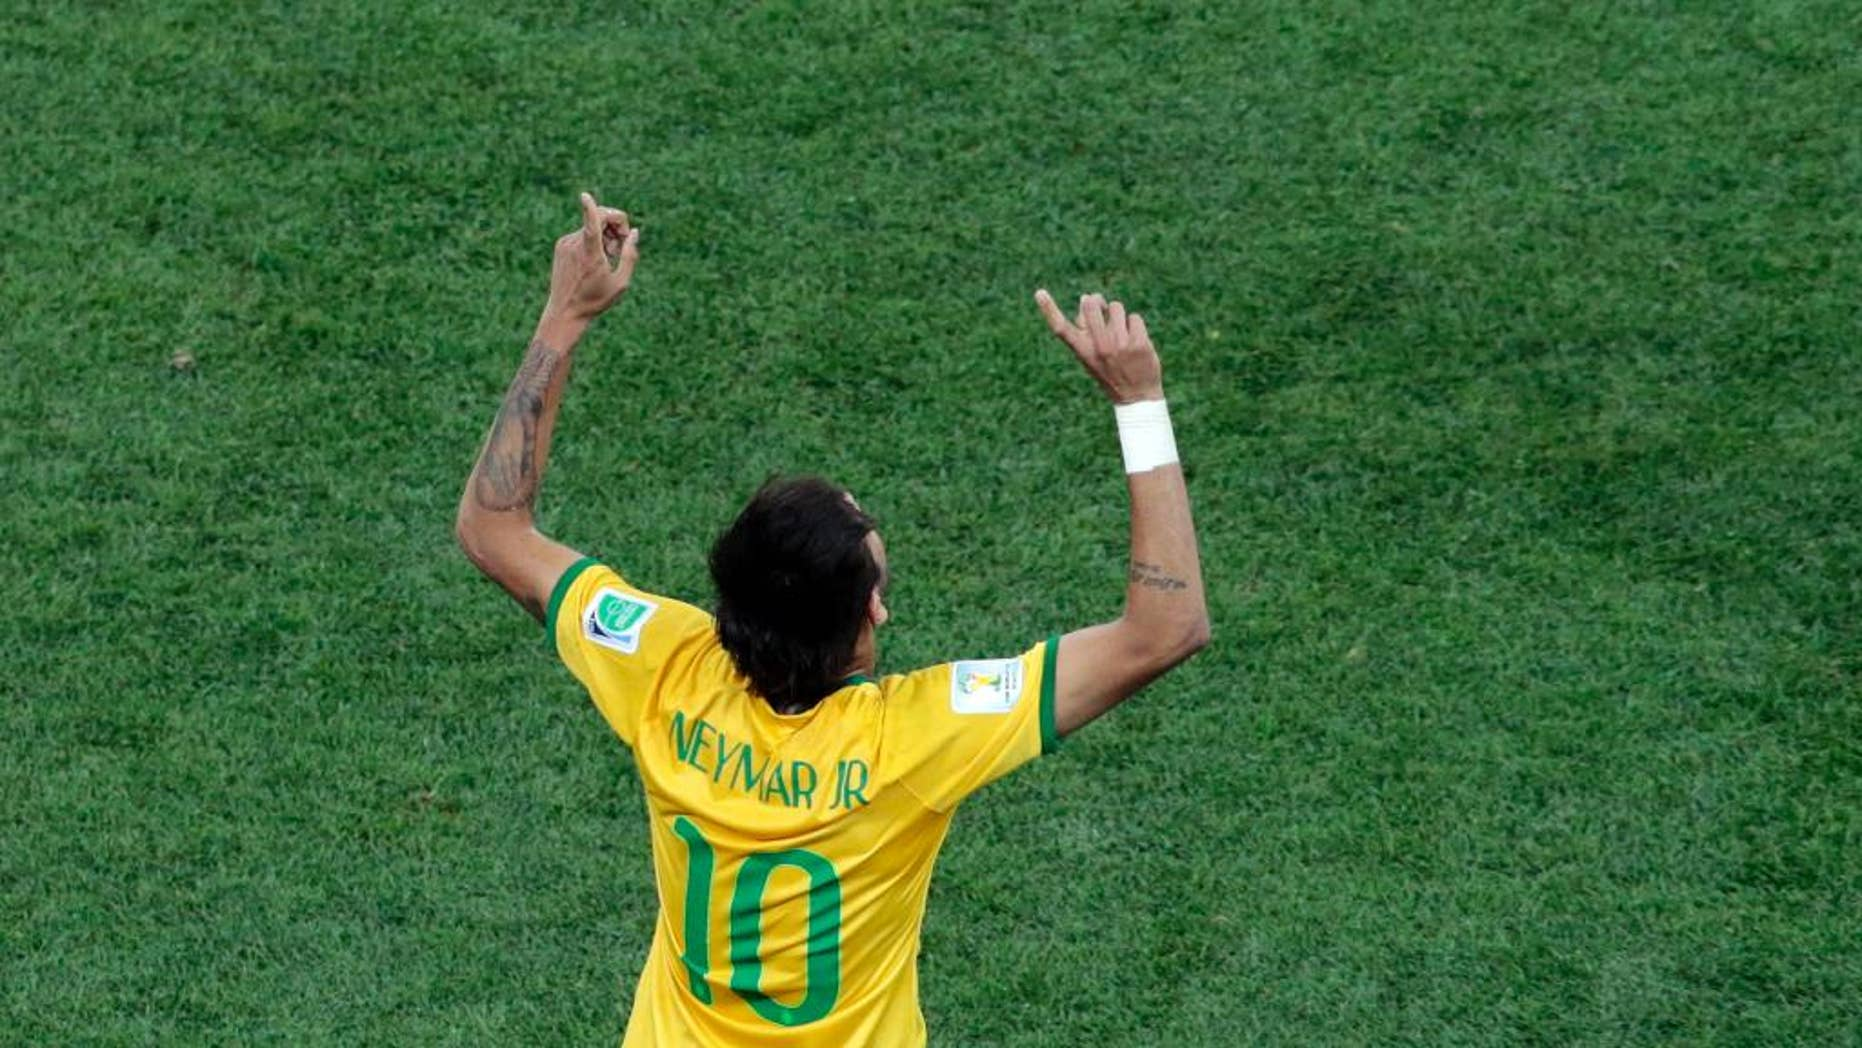 Brazil's Neymar celebrates scoring his side's first goal during the group A World Cup soccer match between Brazil and Croatia, the opening game of the tournament, in the Itaquerao Stadium in Sao Paulo, Brazil, Thursday, June 12, 2014.  (AP Photo/Shuji Kajiyama)